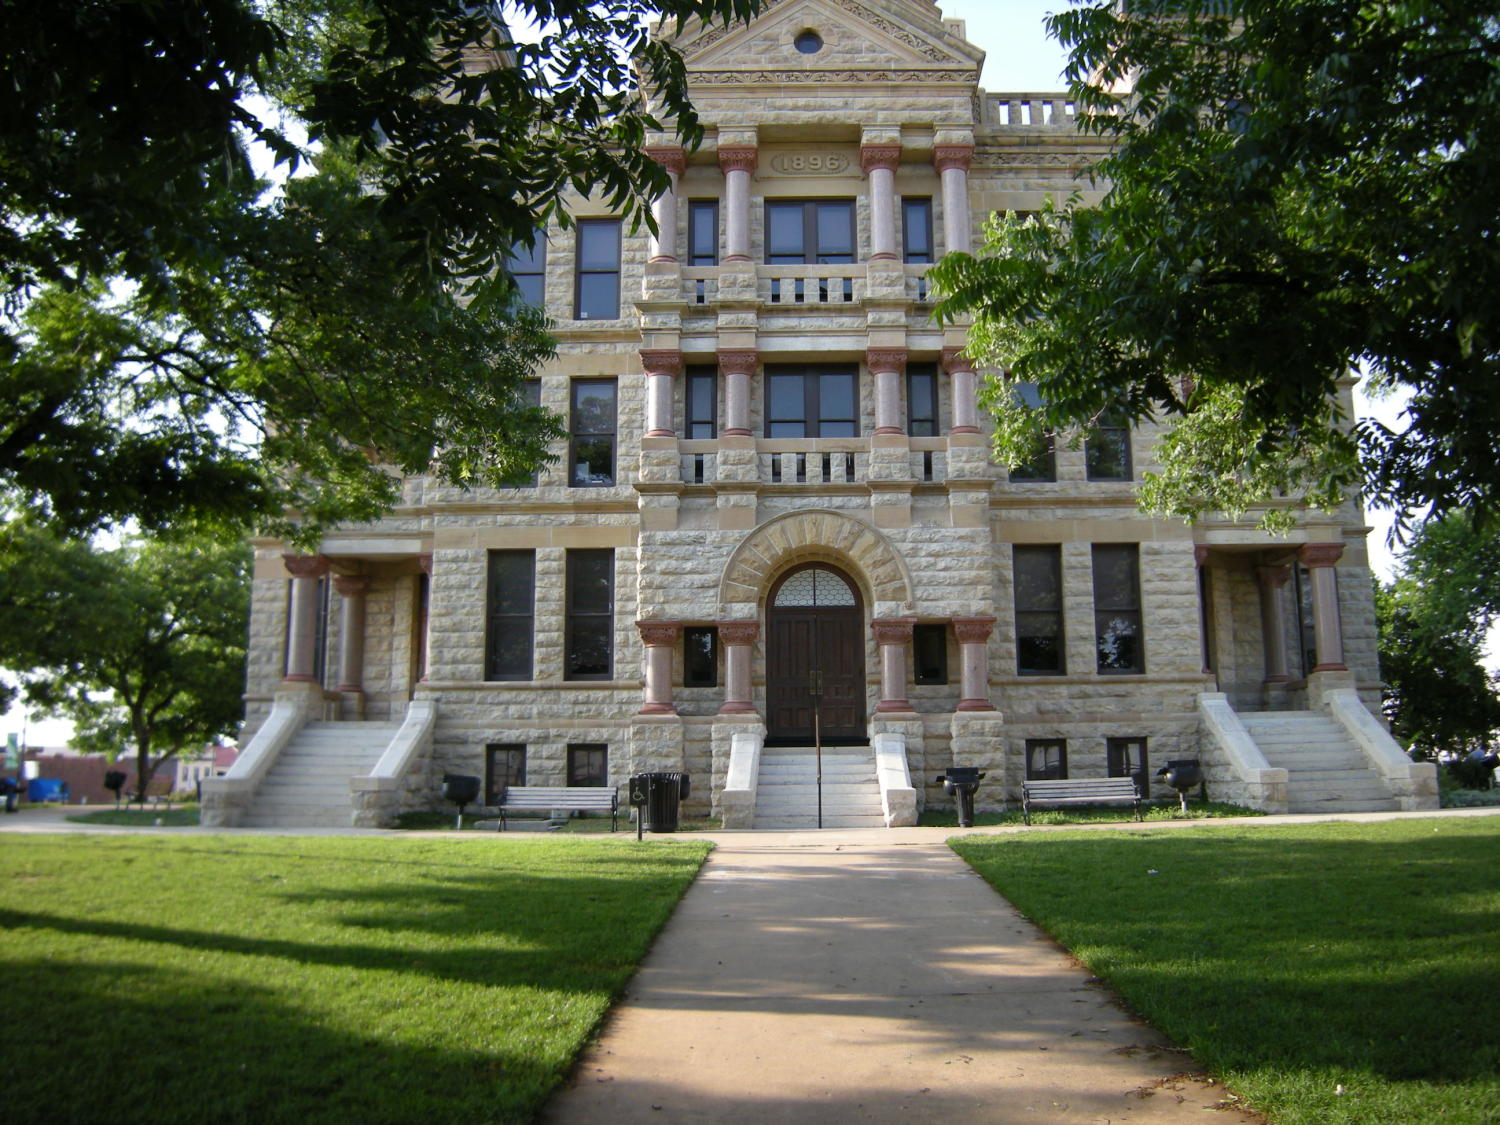 1896 Denton County Courthouse South Side                                                                                                      [Sequence #]: 1 of 1